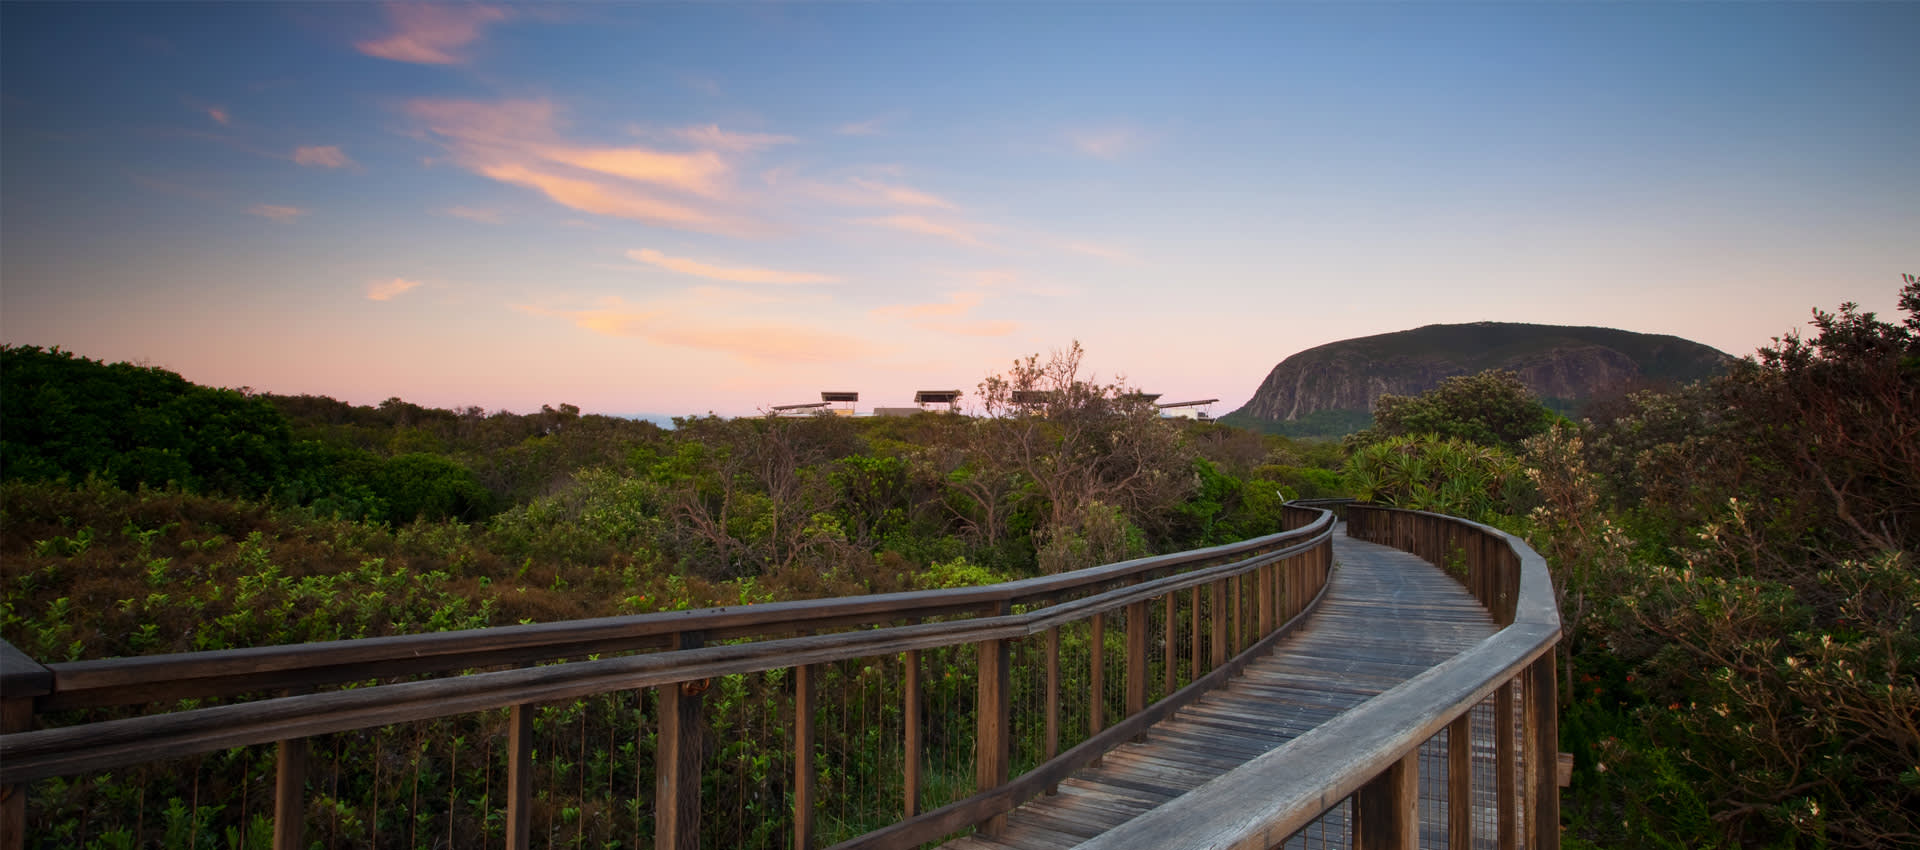 10 things to do in Coolum